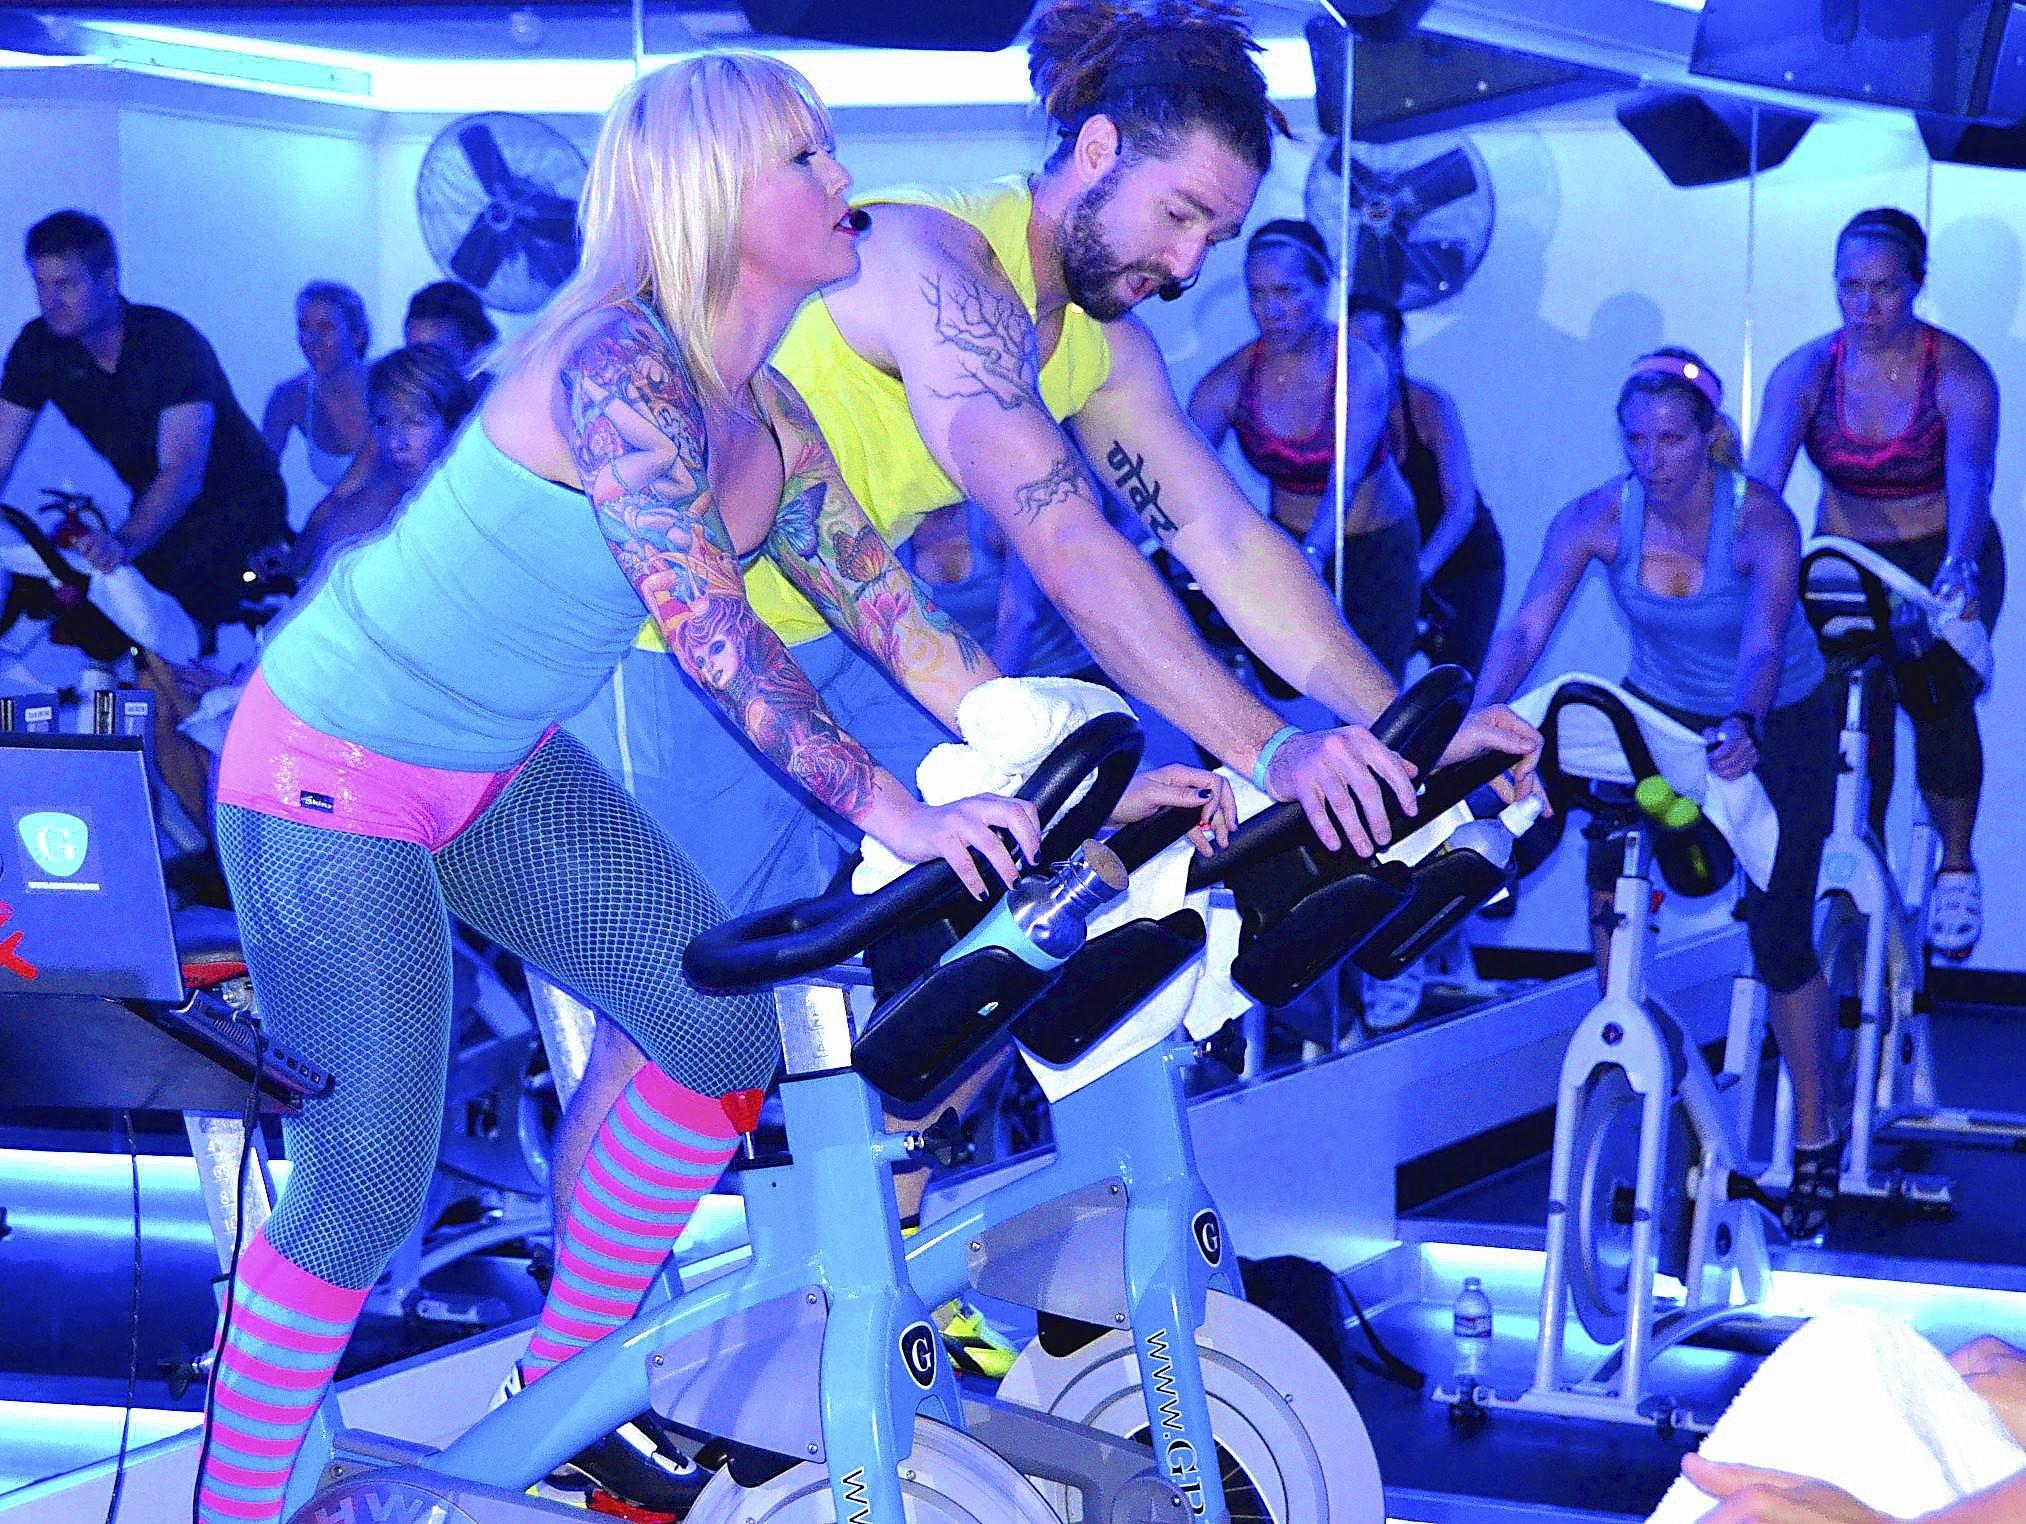 Dani Gallinger and Matt Bourne lead the workout during the GRIT Ride For CHOC Charity event benefitting CHOC Children's Heart Institute on Saturday.